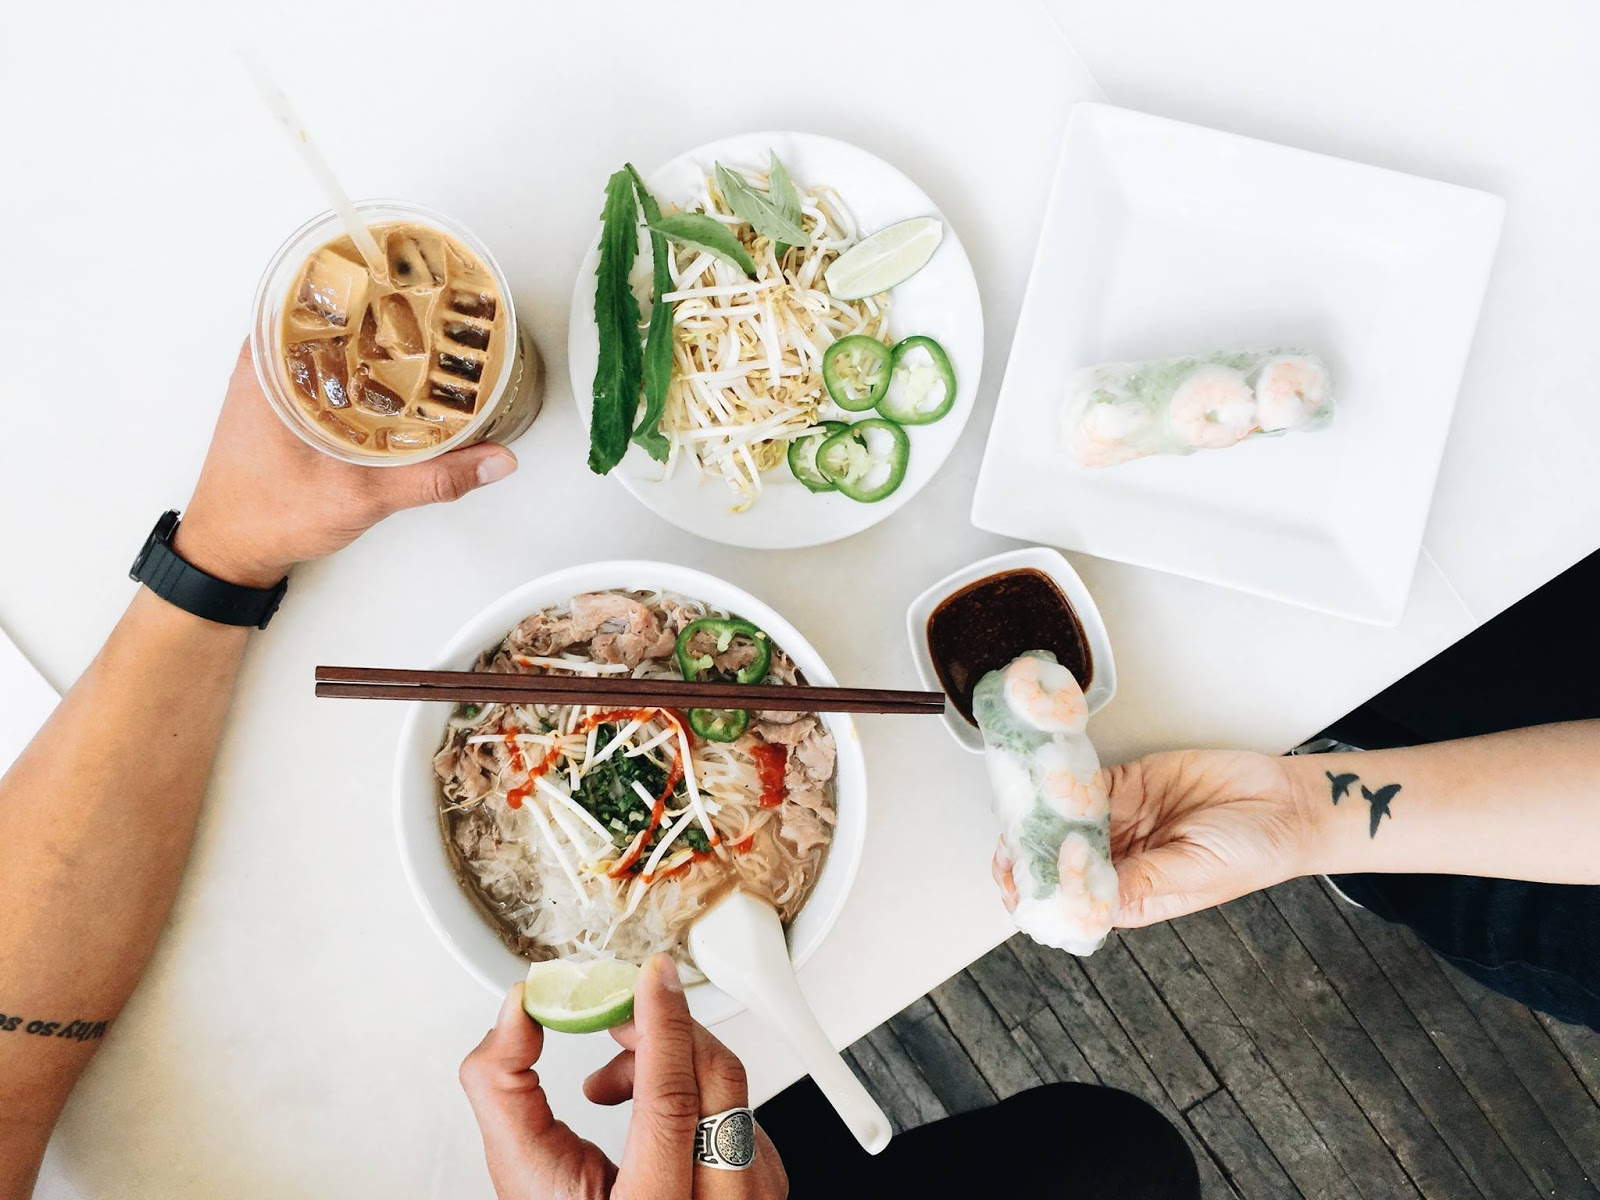 Mar. 4 | Sawleaf Opens New Location In Irvine - First 100 Get Free Sriracha Keychain